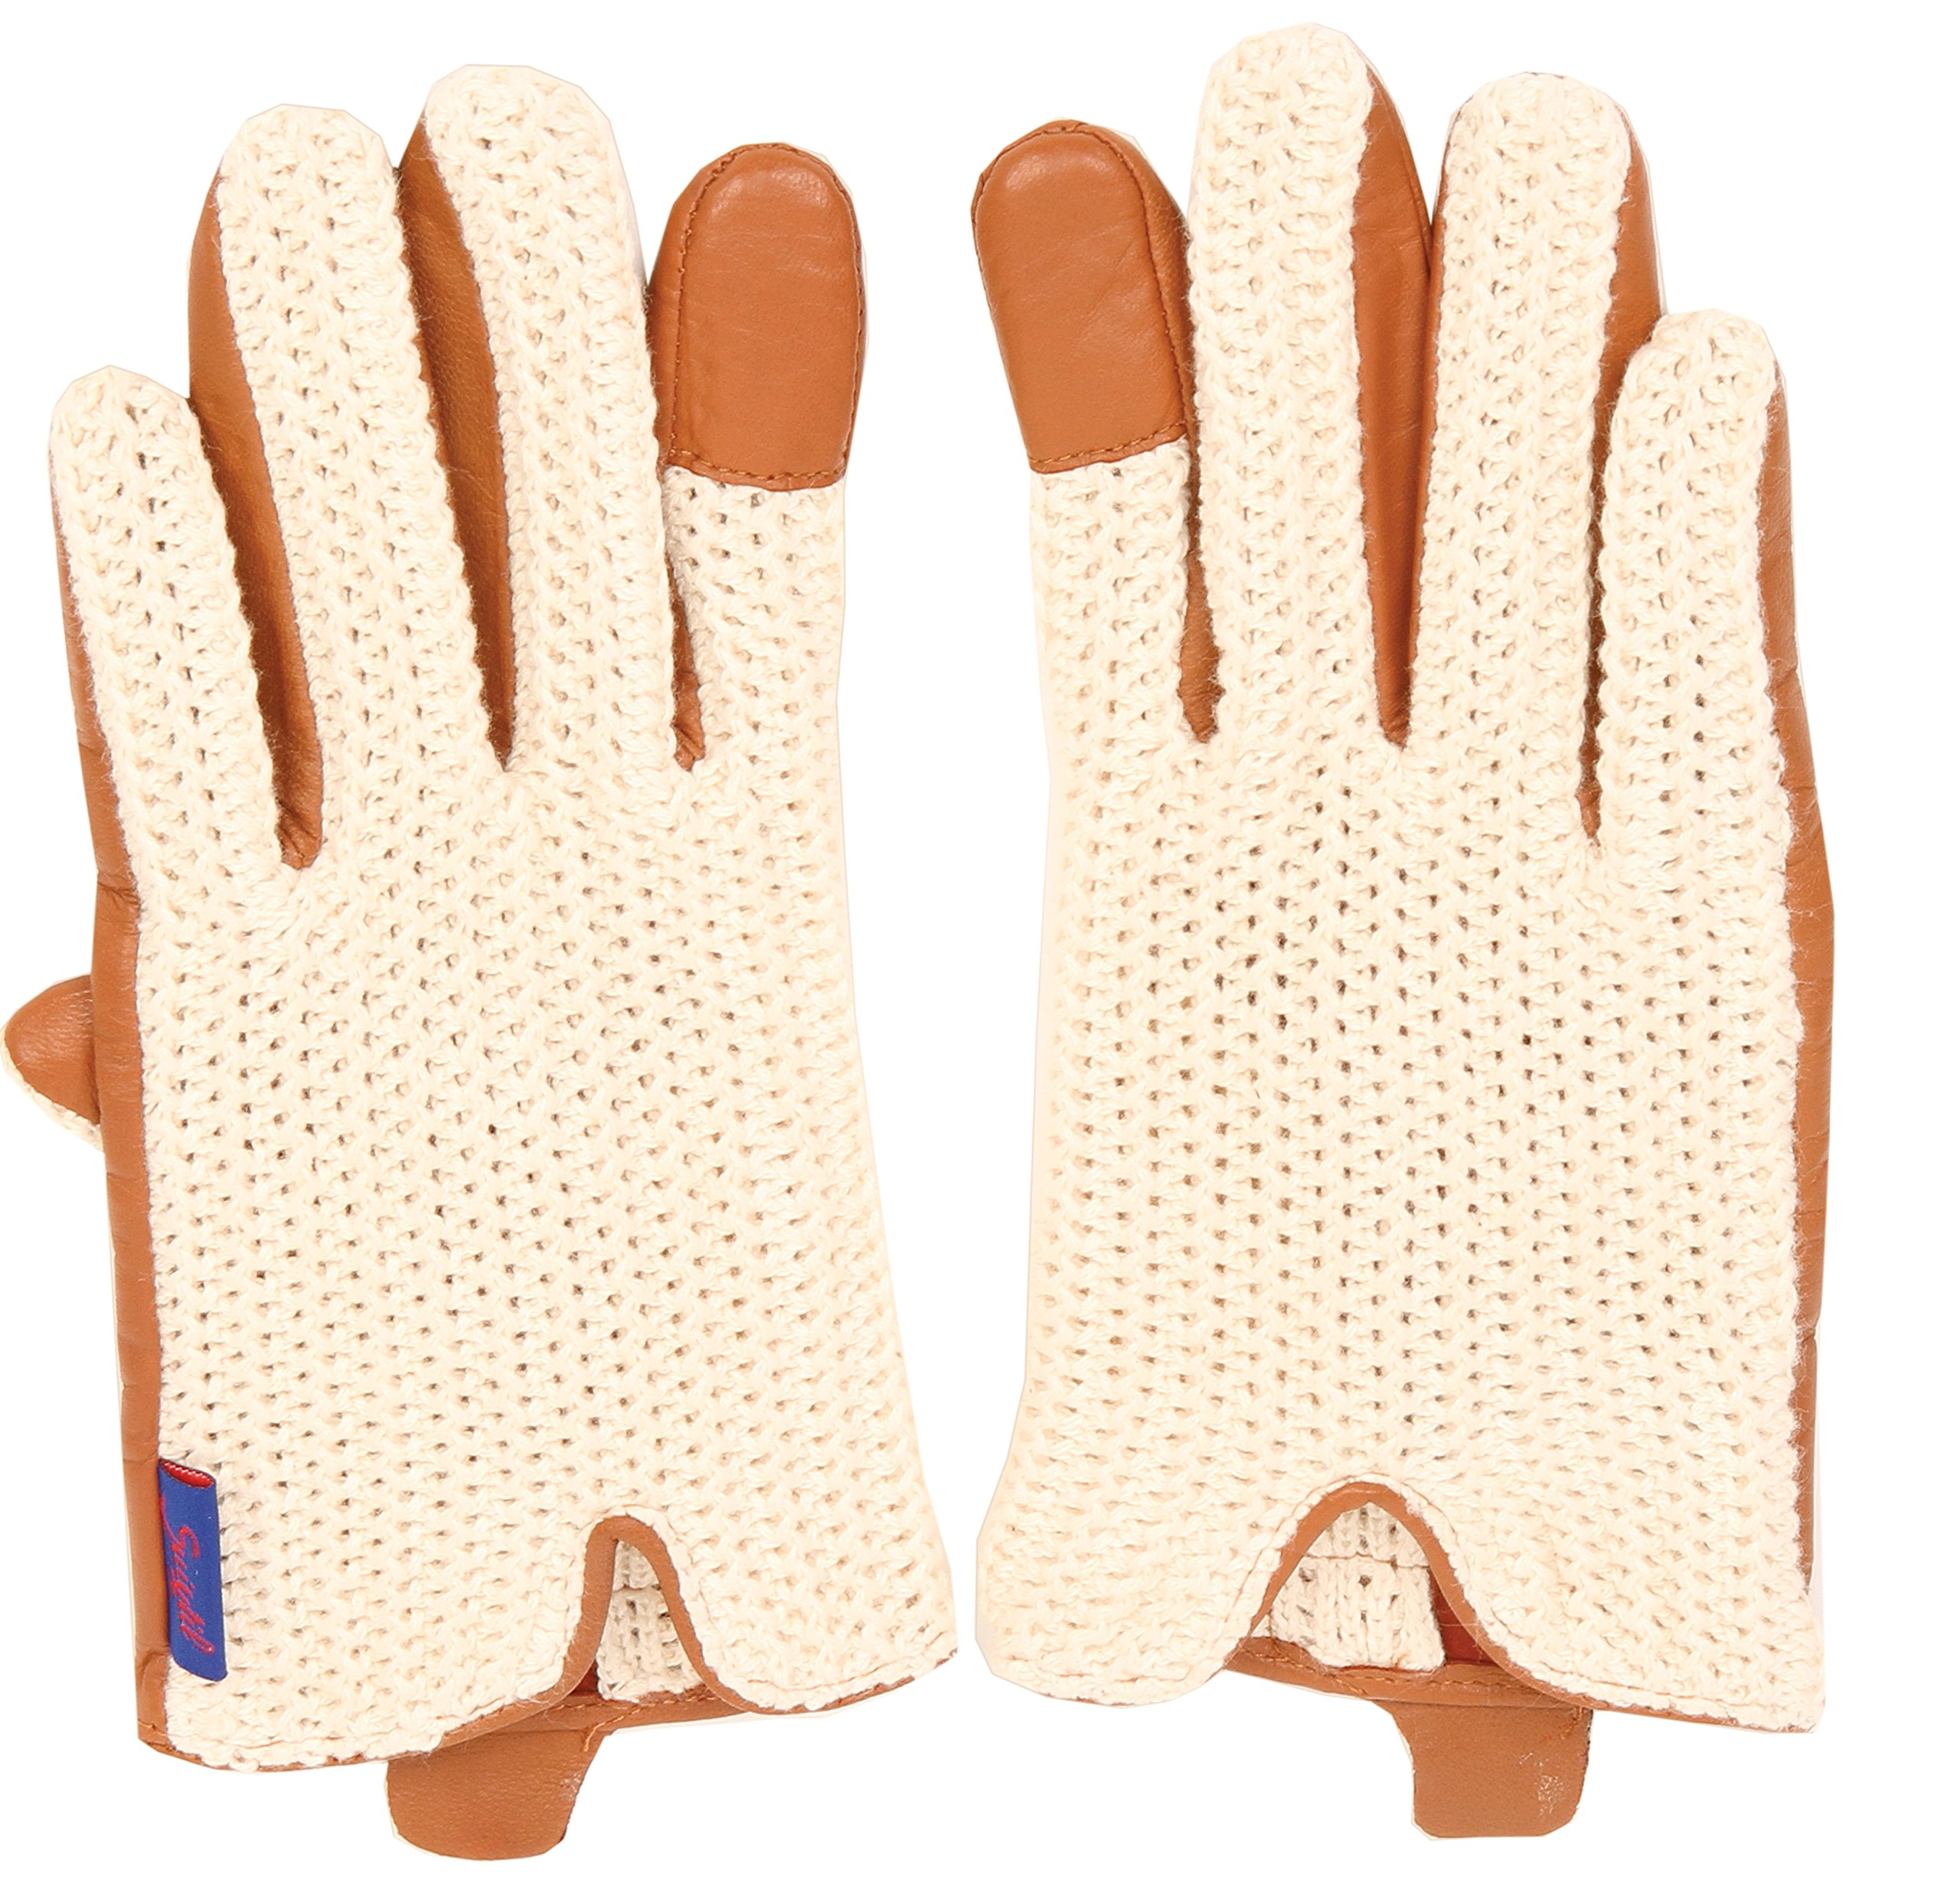 Suixtil Grand Prix Race lamb leather & knitted cotton Driving Gloves, Cognac, M by Suixtil (Image #3)